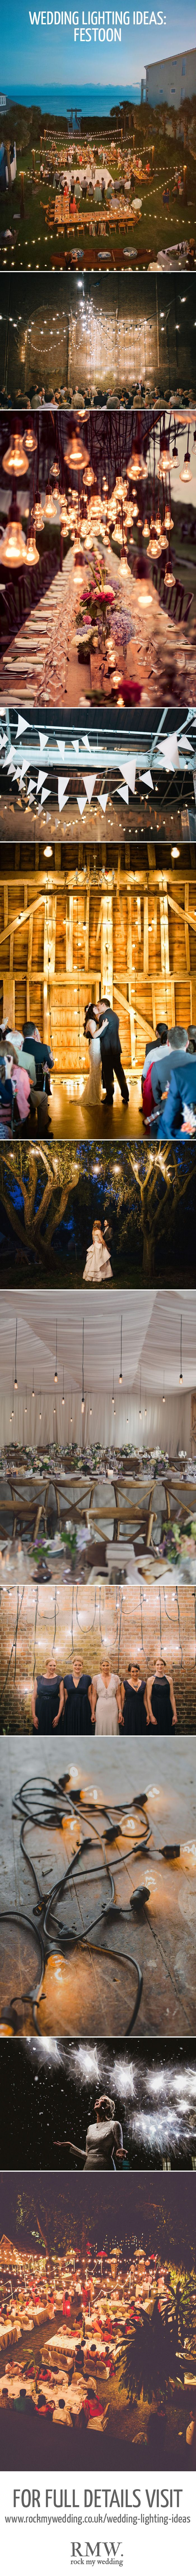 Festoon Lighting For Weddings | http://www.rockmywedding.co.uk/gorgeous-lighting-ideas-wedding-day/